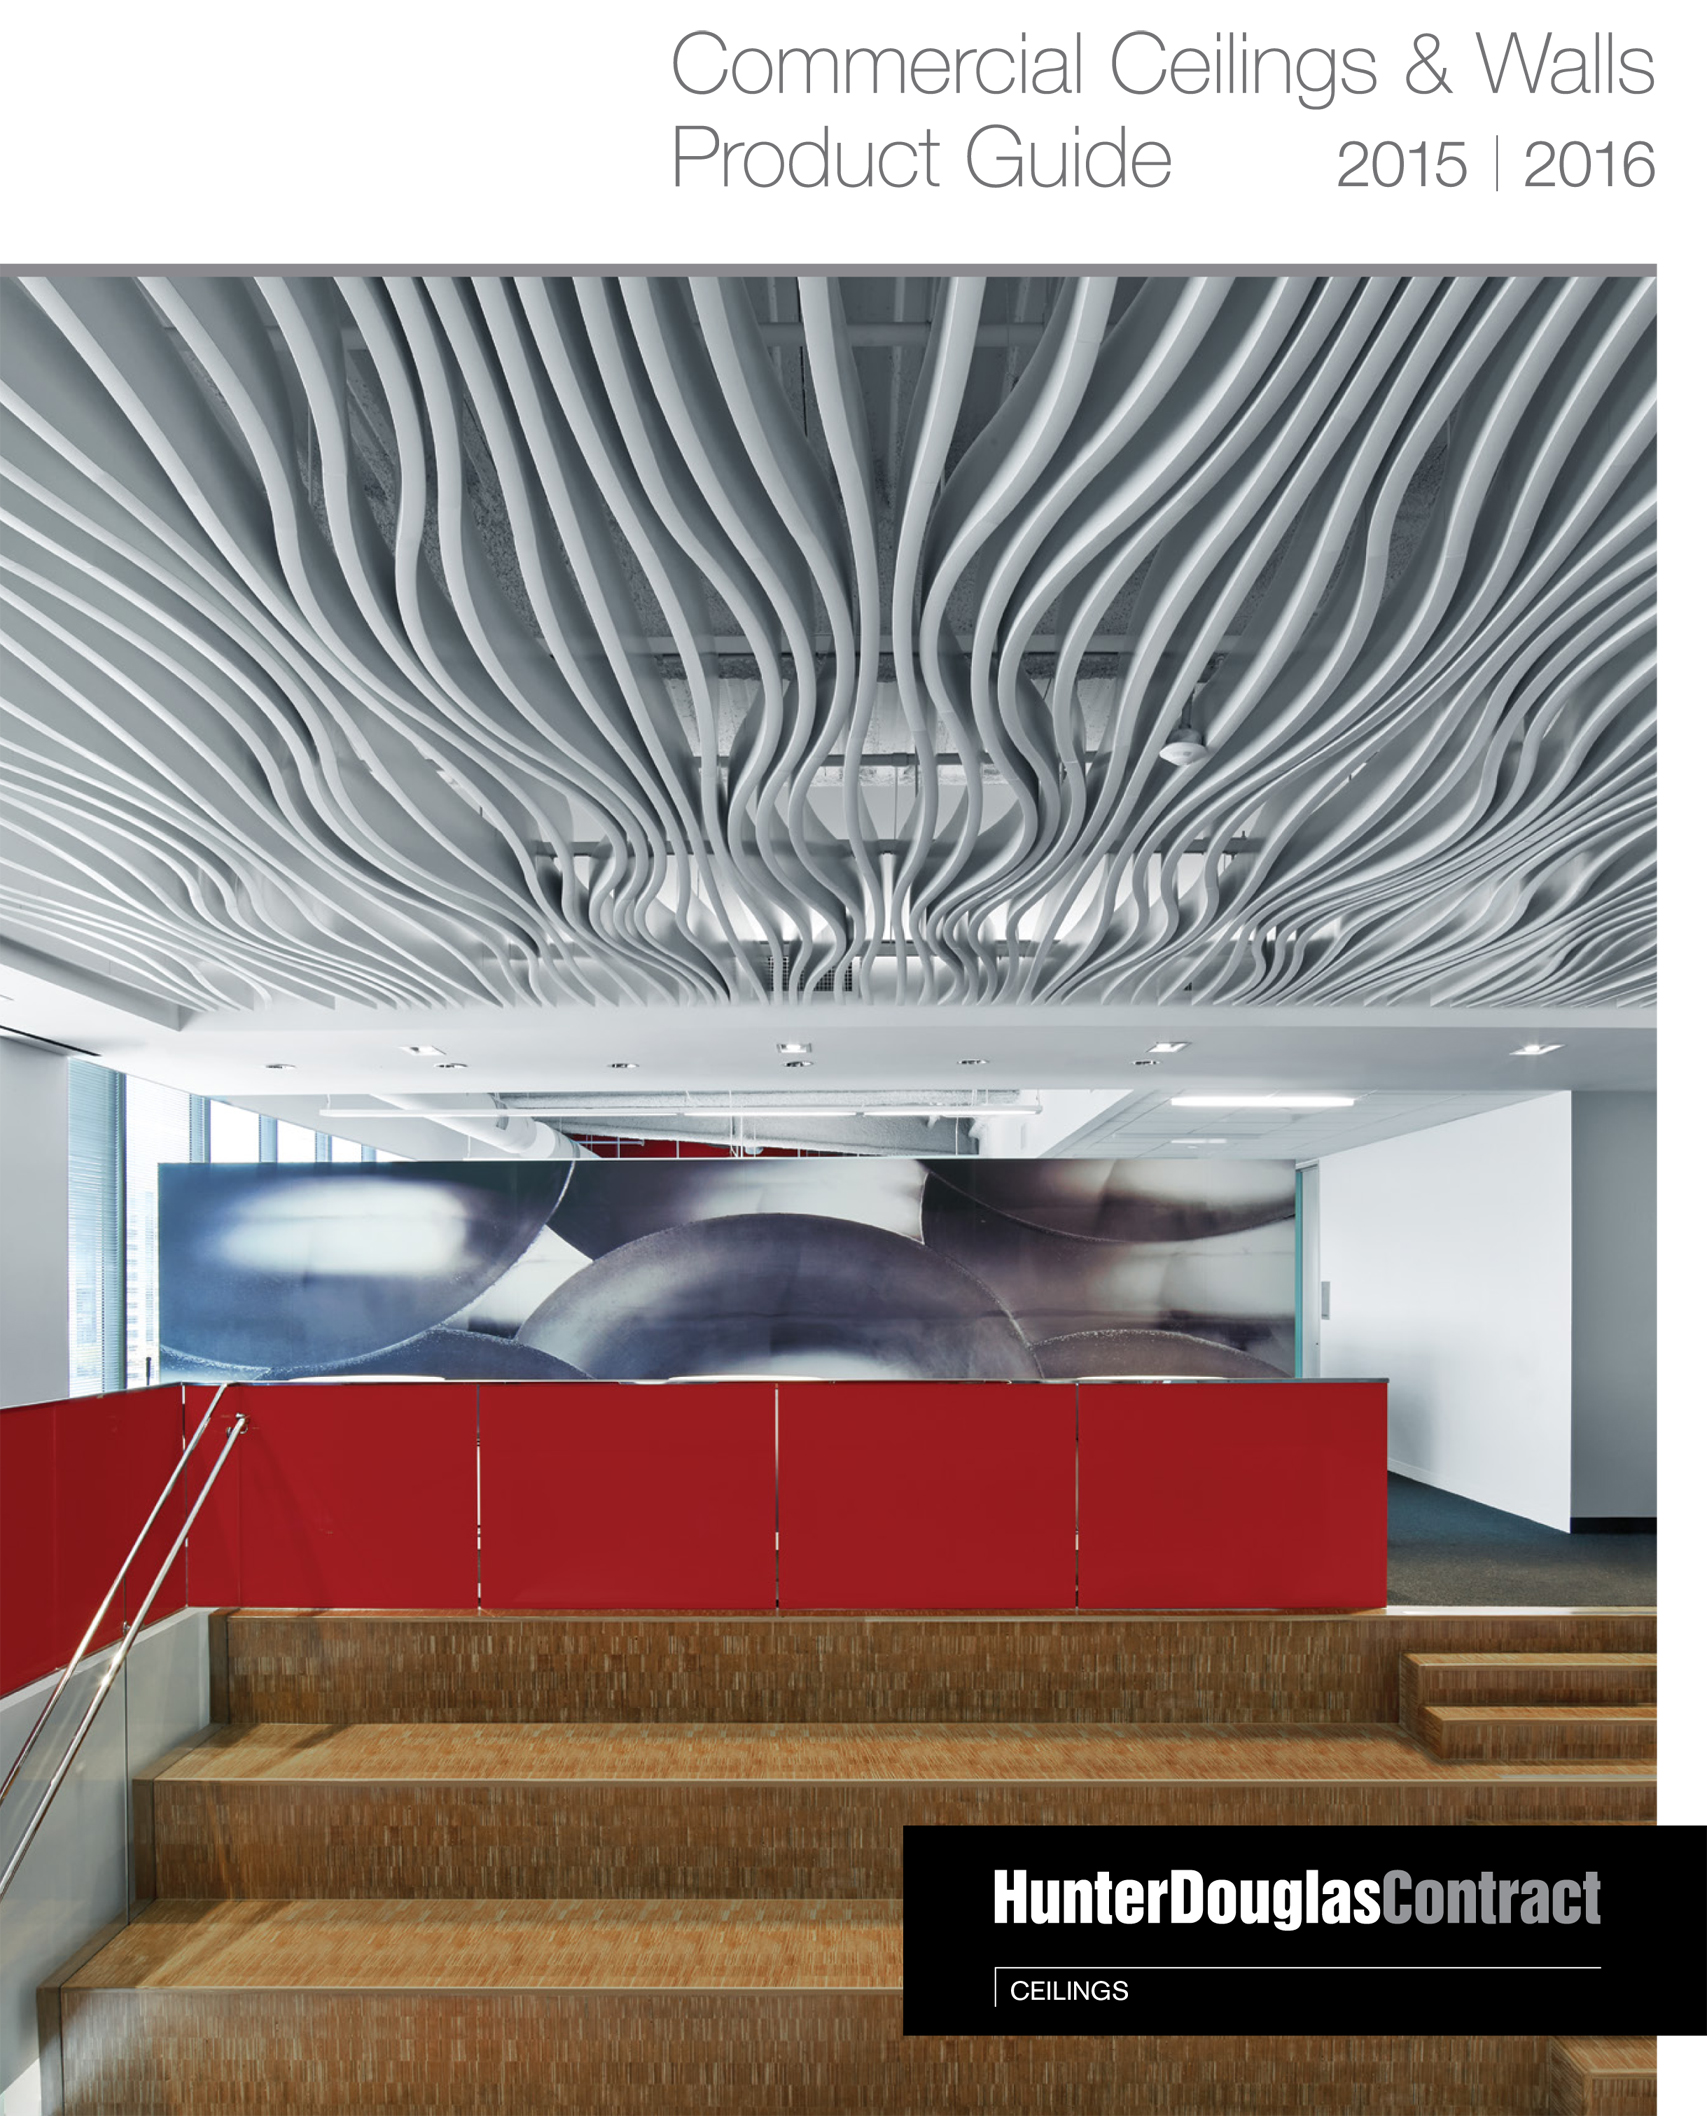 Hunter Douglas Introduces Its 2017 Commercial Ceilings And Walls Guide